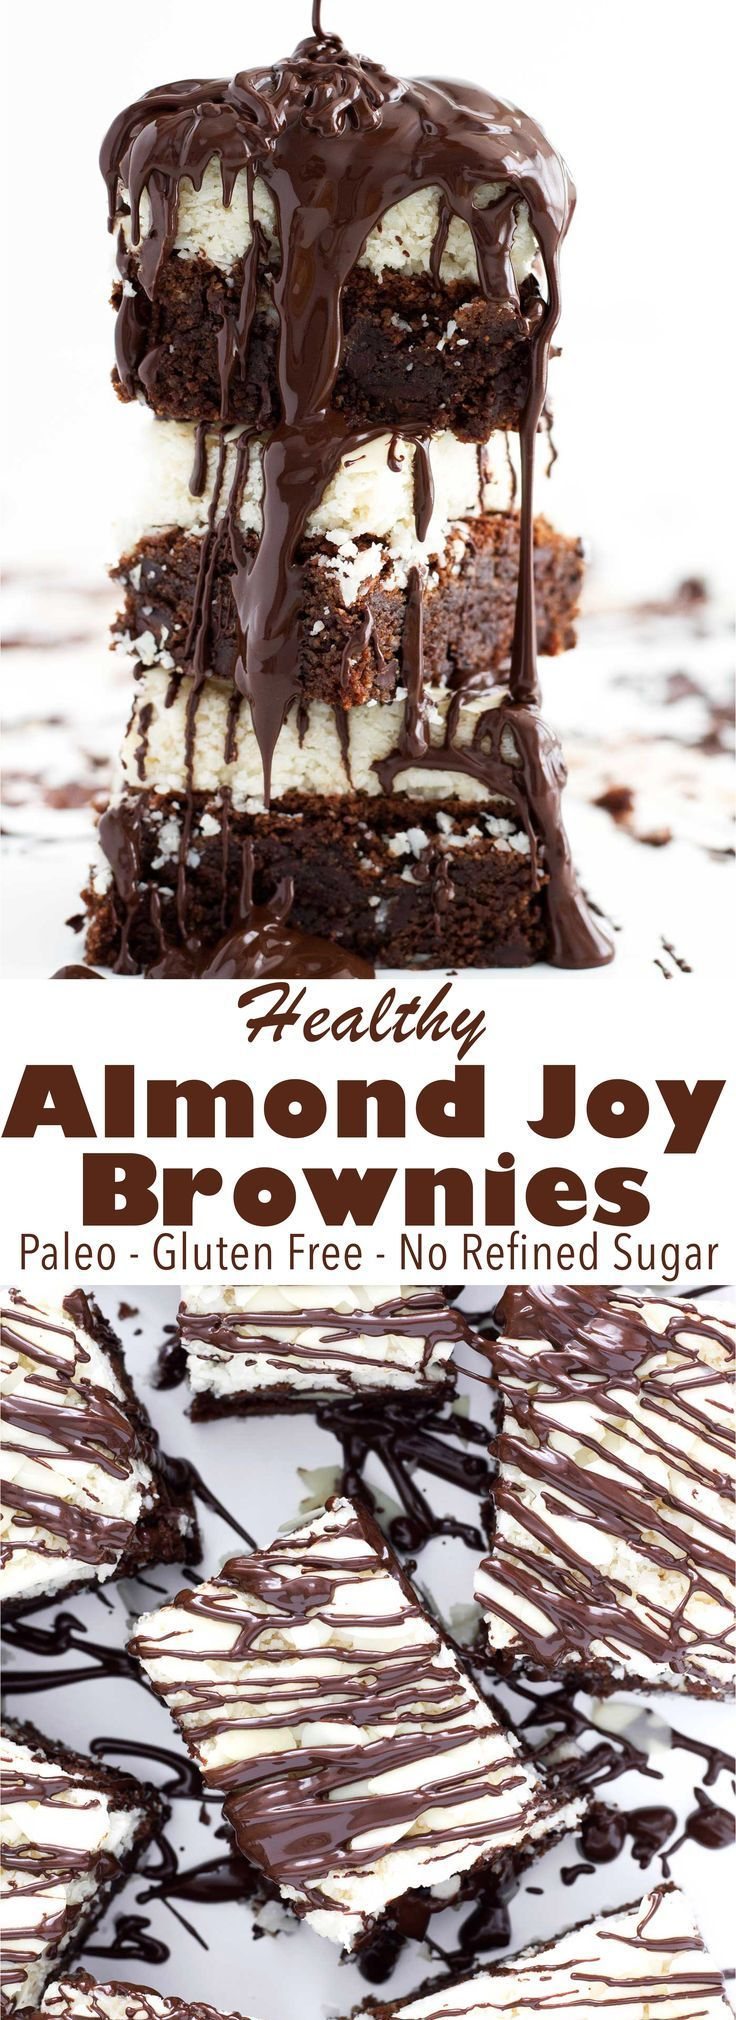 Just like the candy bar, but in brownie form! These Almond Joy brownies are paleo, gluten free, and dairy free. Perfect for a party or a weeknight treat!